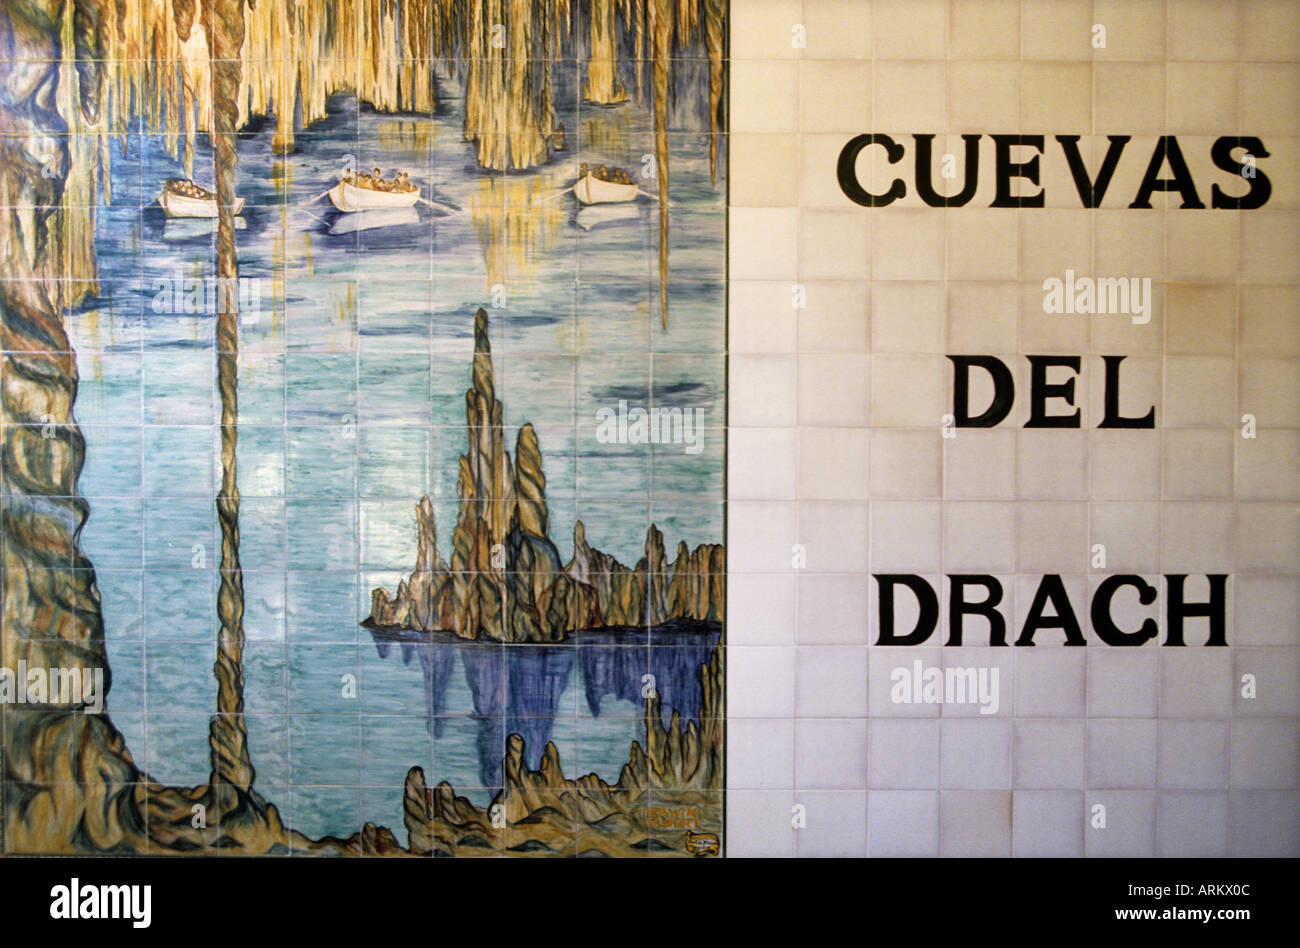 Painted Tiles At The Entrance Of Cuevas Del Drach Mallorca Spain